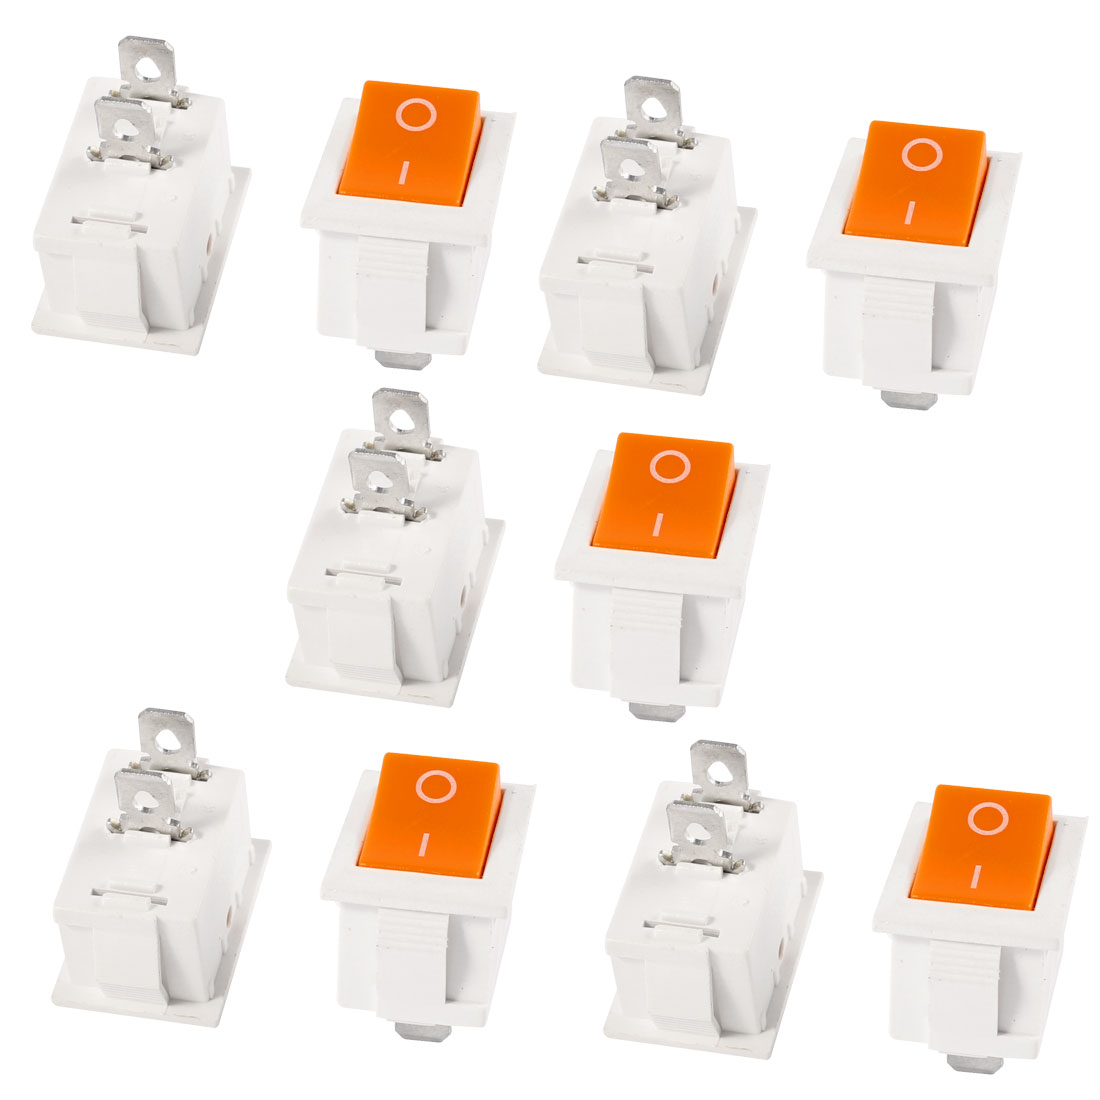 10 Pcs AC 250V/6A 125V/10A ON/OFF SPST Orange Button Snap In Rocker Switch